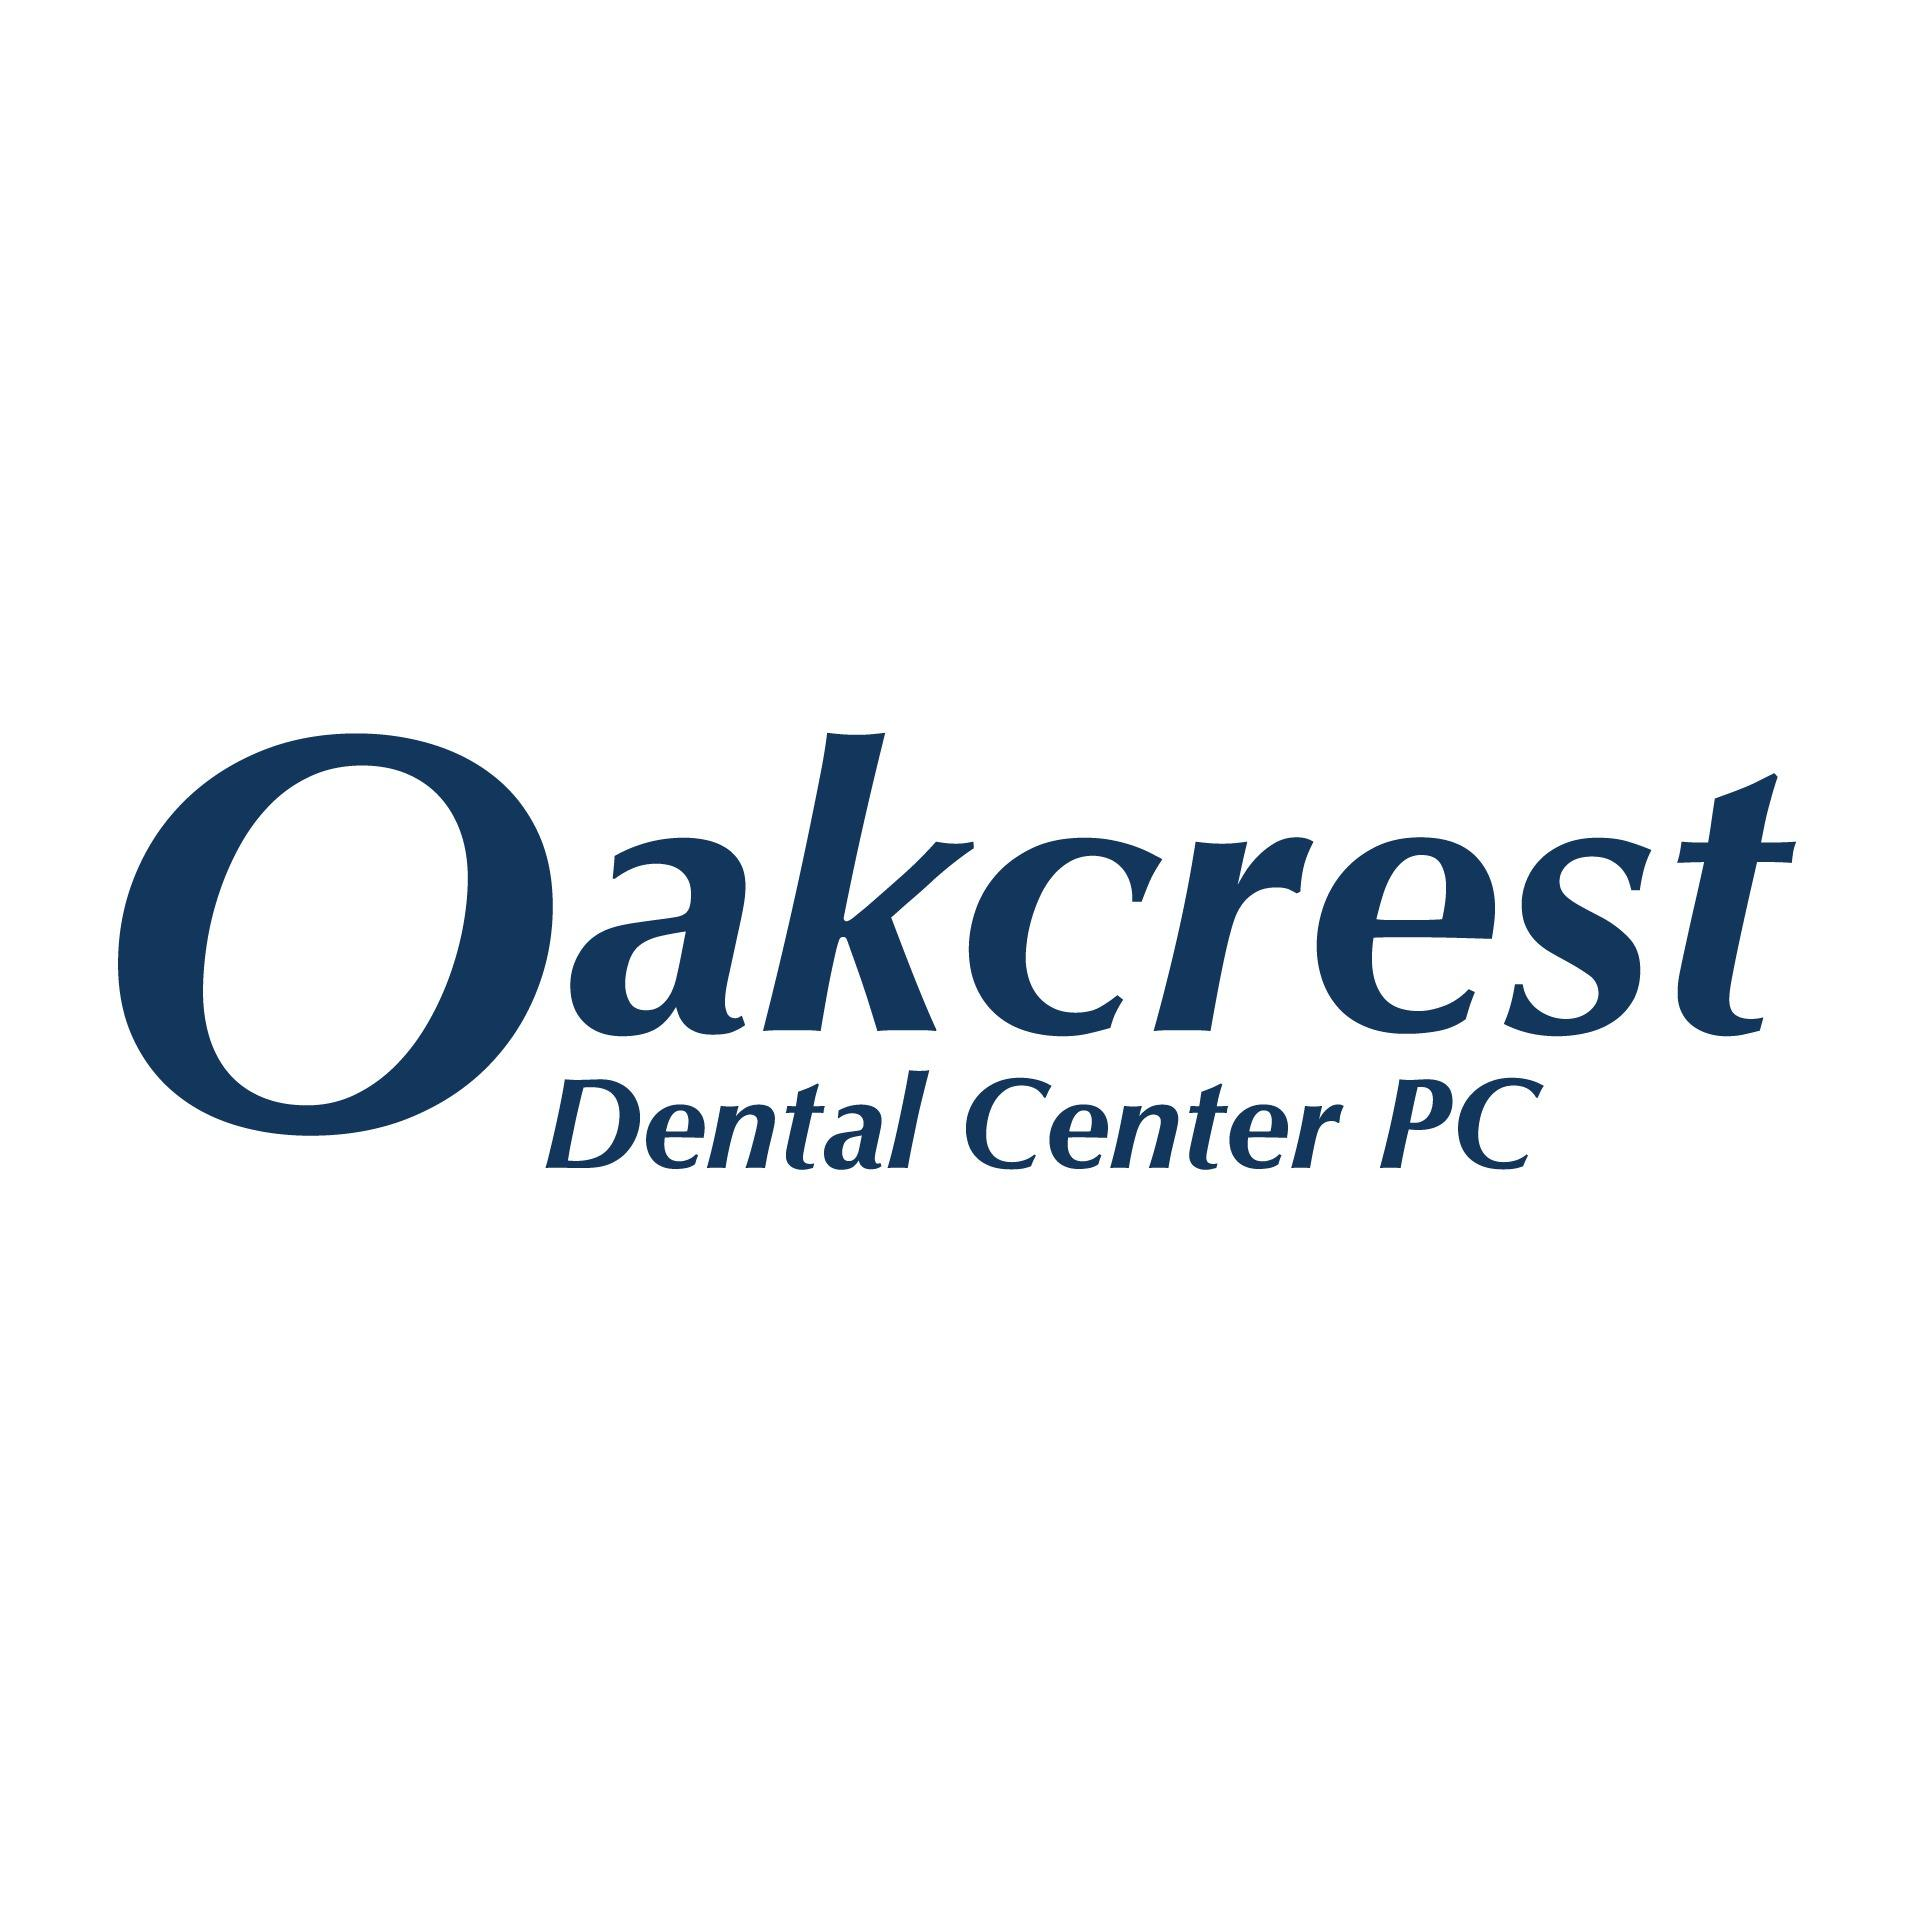 Oakcrest Dental Center